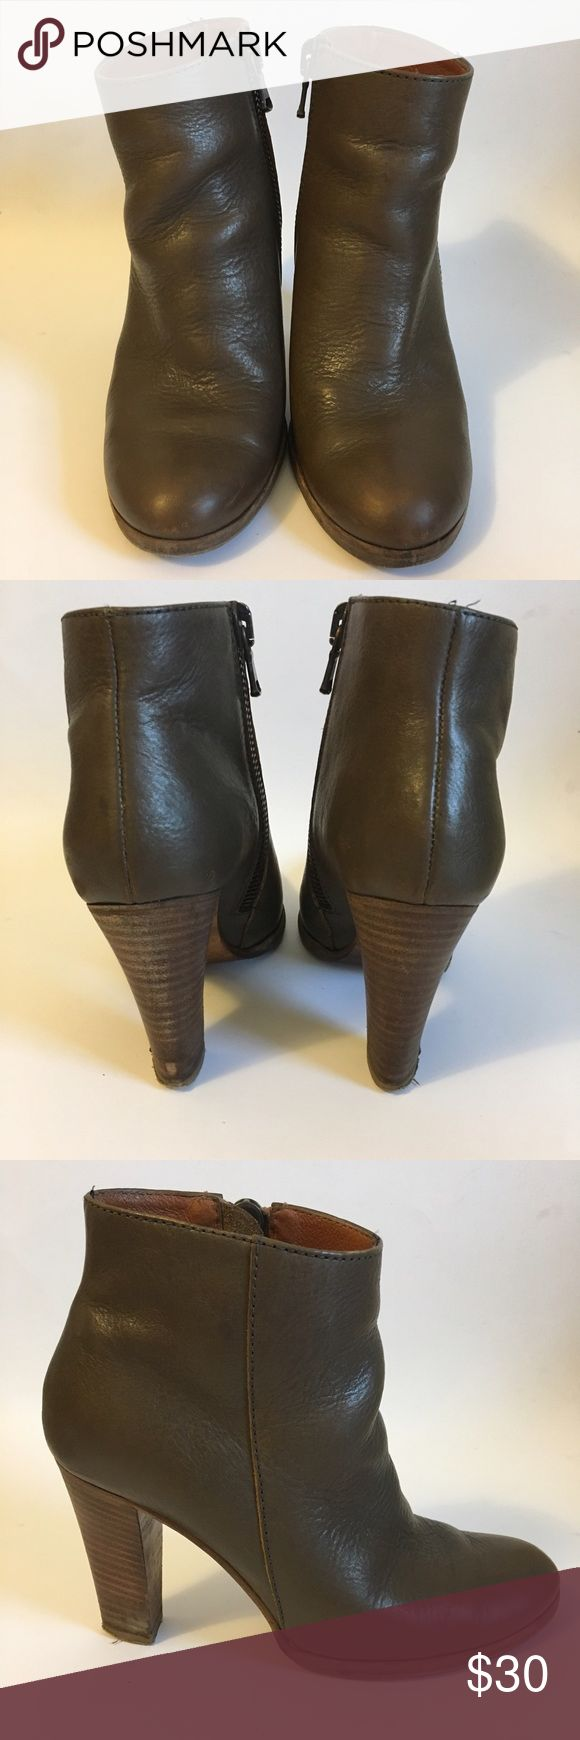 Madewell Slouchy Pebbled Leather Heeled Booties Women's US 7. Lightly worn. Madewell Shoes Ankle Boots & Booties